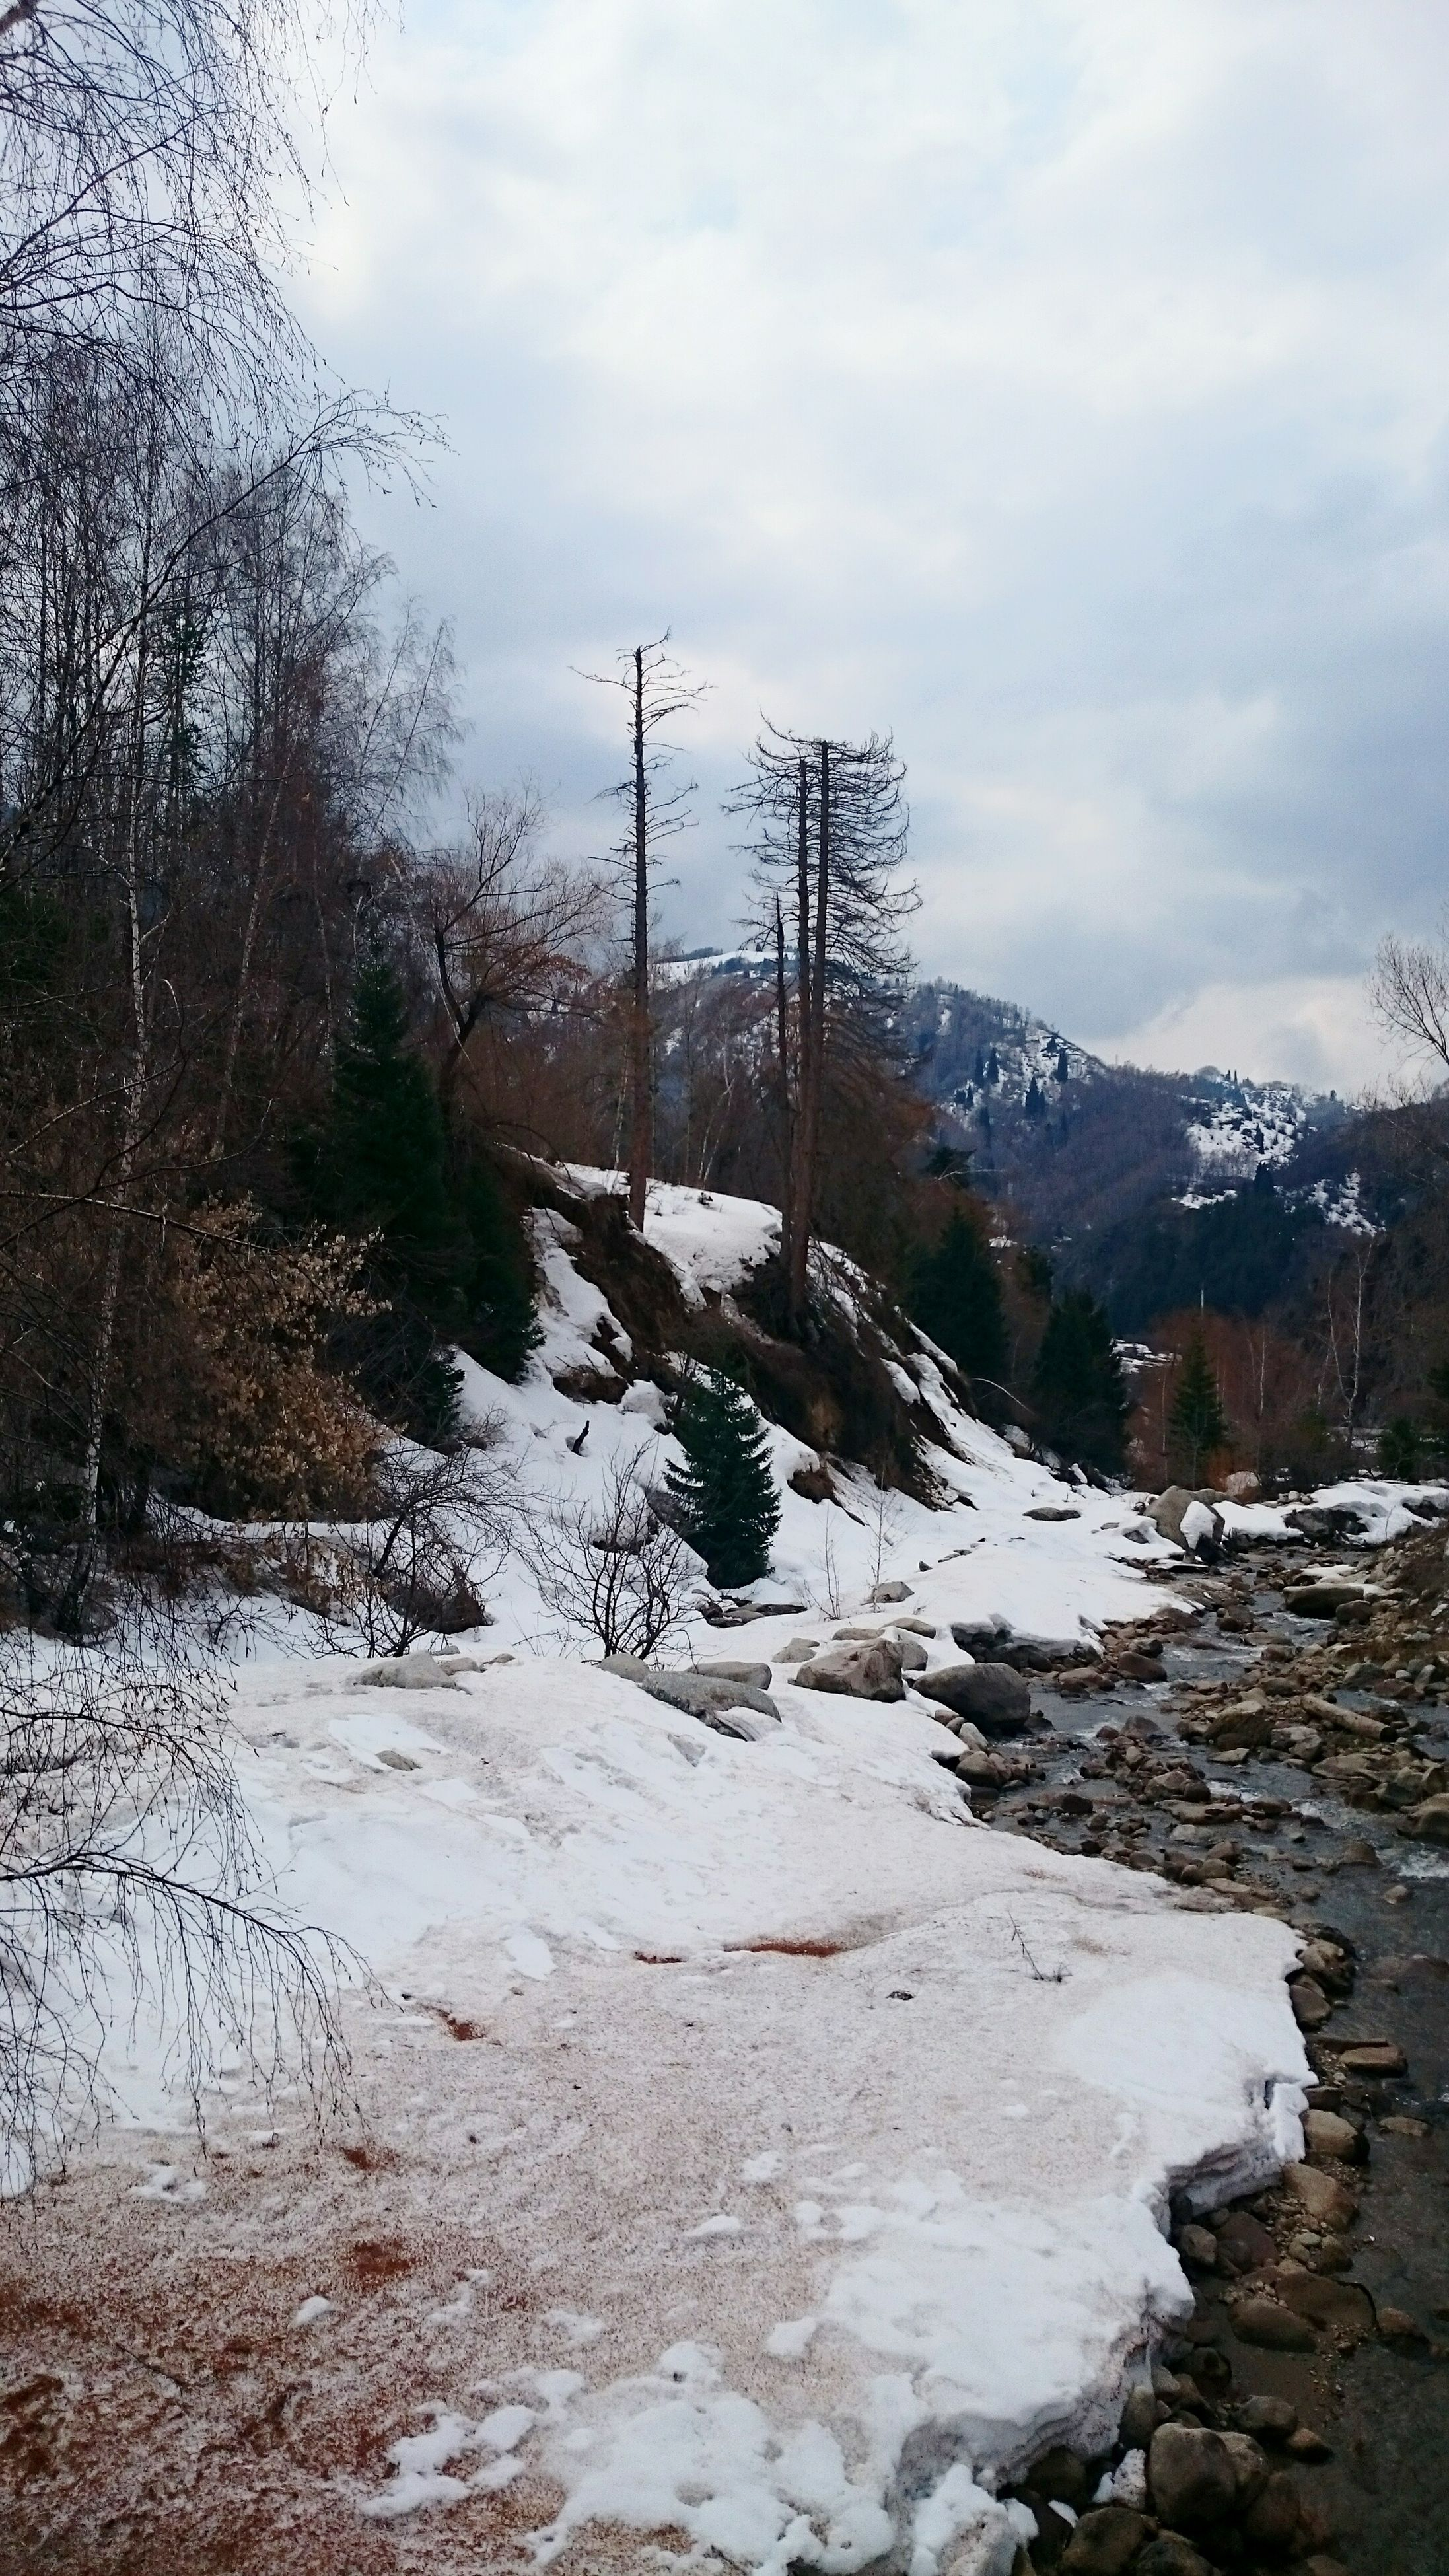 sky, snow, cold temperature, winter, tranquility, tranquil scene, mountain, cloud - sky, water, scenics, weather, nature, landscape, beauty in nature, cloudy, tree, season, river, non-urban scene, day